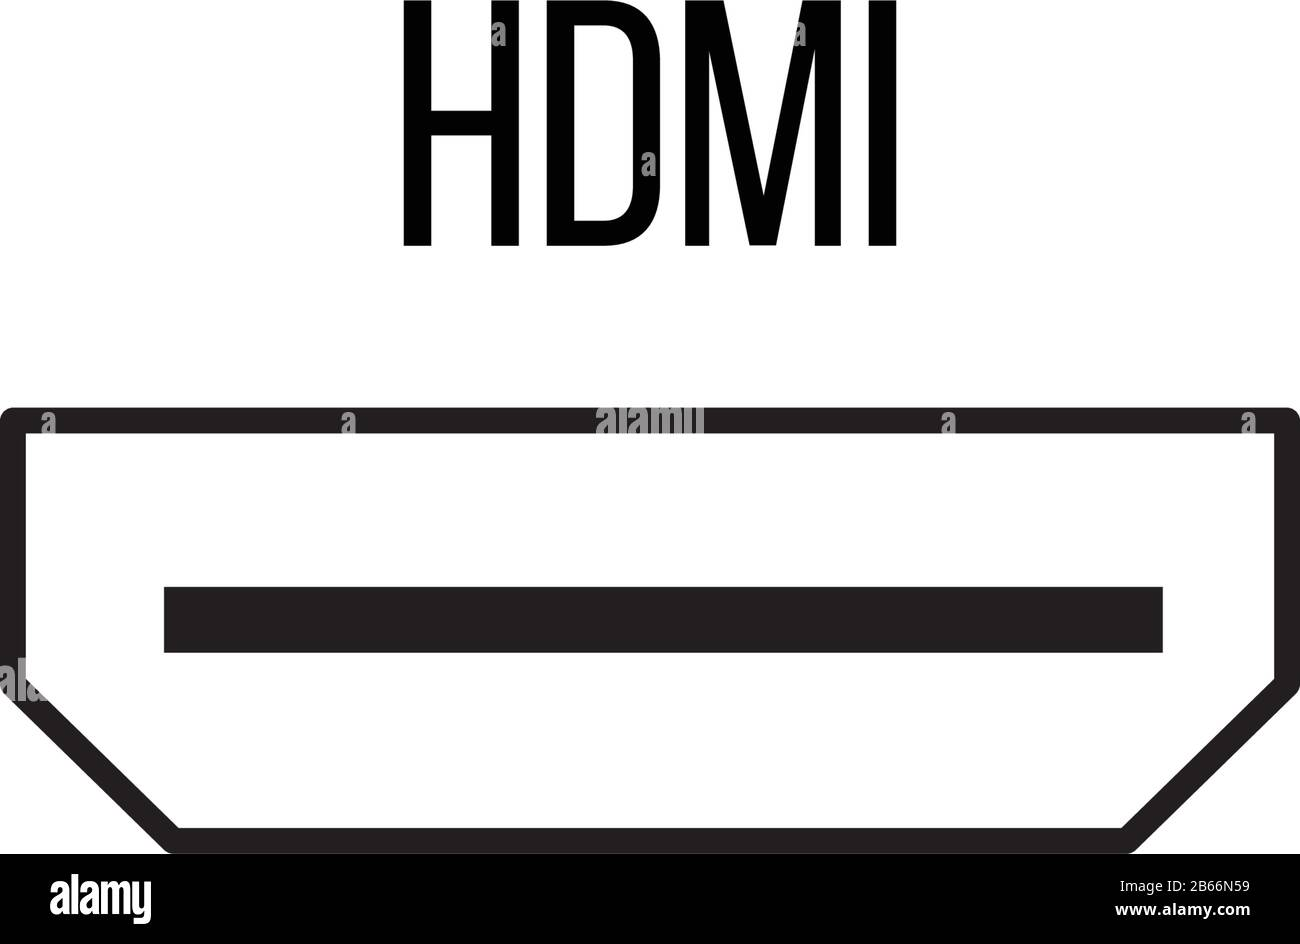 hdmi icon from electronic devices collection line vector sign symbol for web and mobile stock vector illustration isolated on white background stock vector image art alamy https www alamy com hdmi icon from electronic devices collection line vector sign symbol for web and mobile stock vector illustration isolated on white background image348043621 html